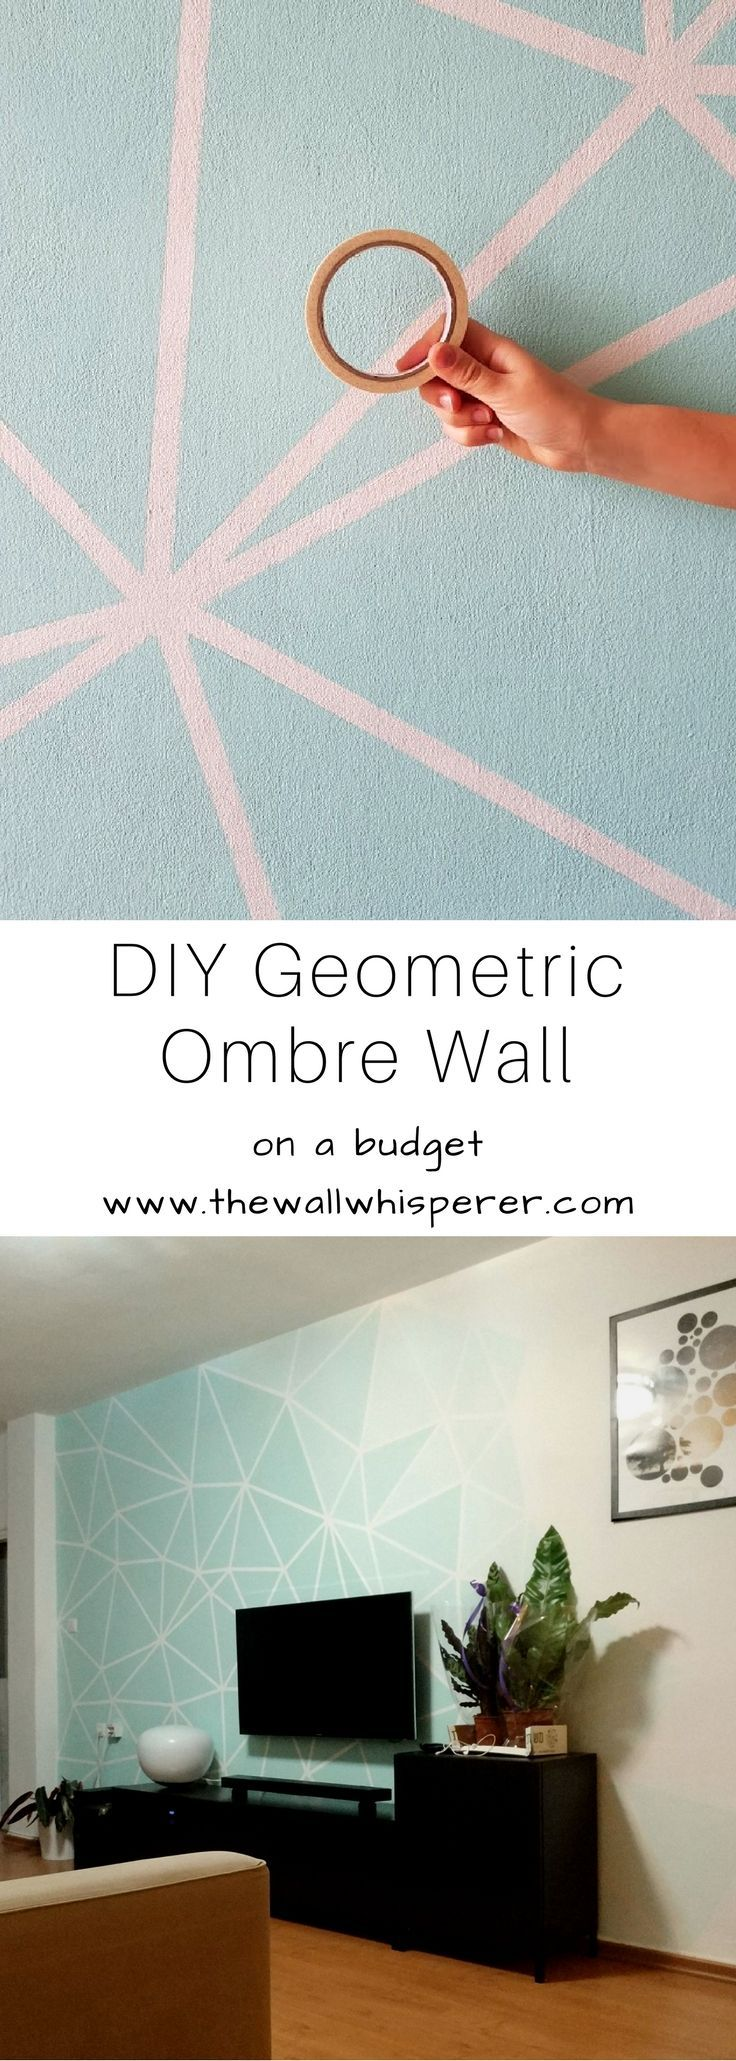 TV wall - DIY faux wallpaper home decor accent wall project - on a budget